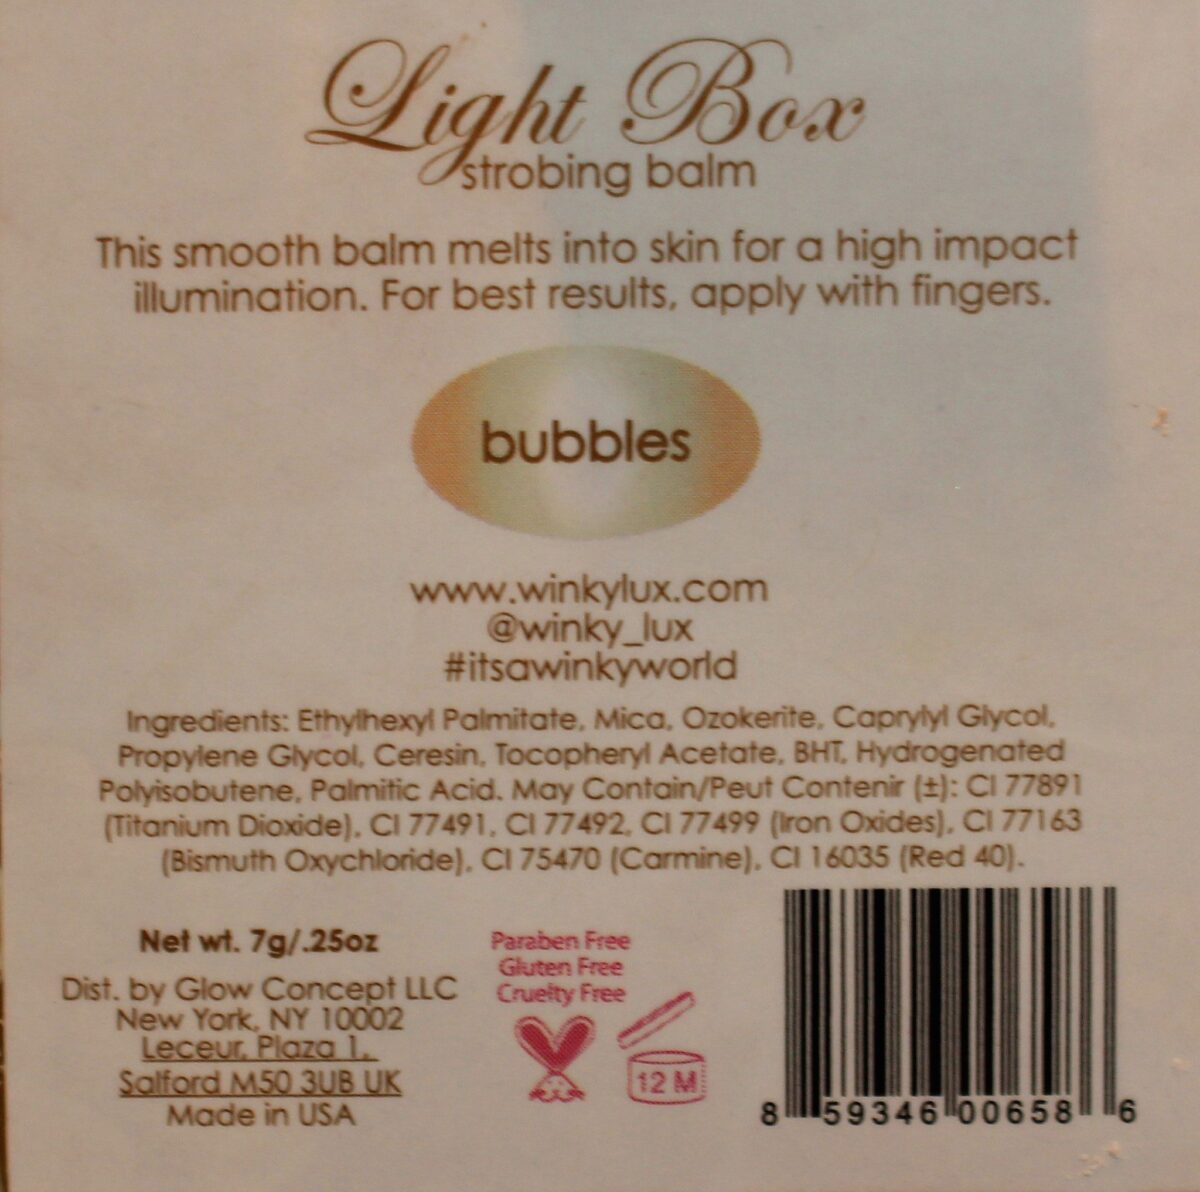 Winky-Lux-strobing-balm-highlighter-ingredients